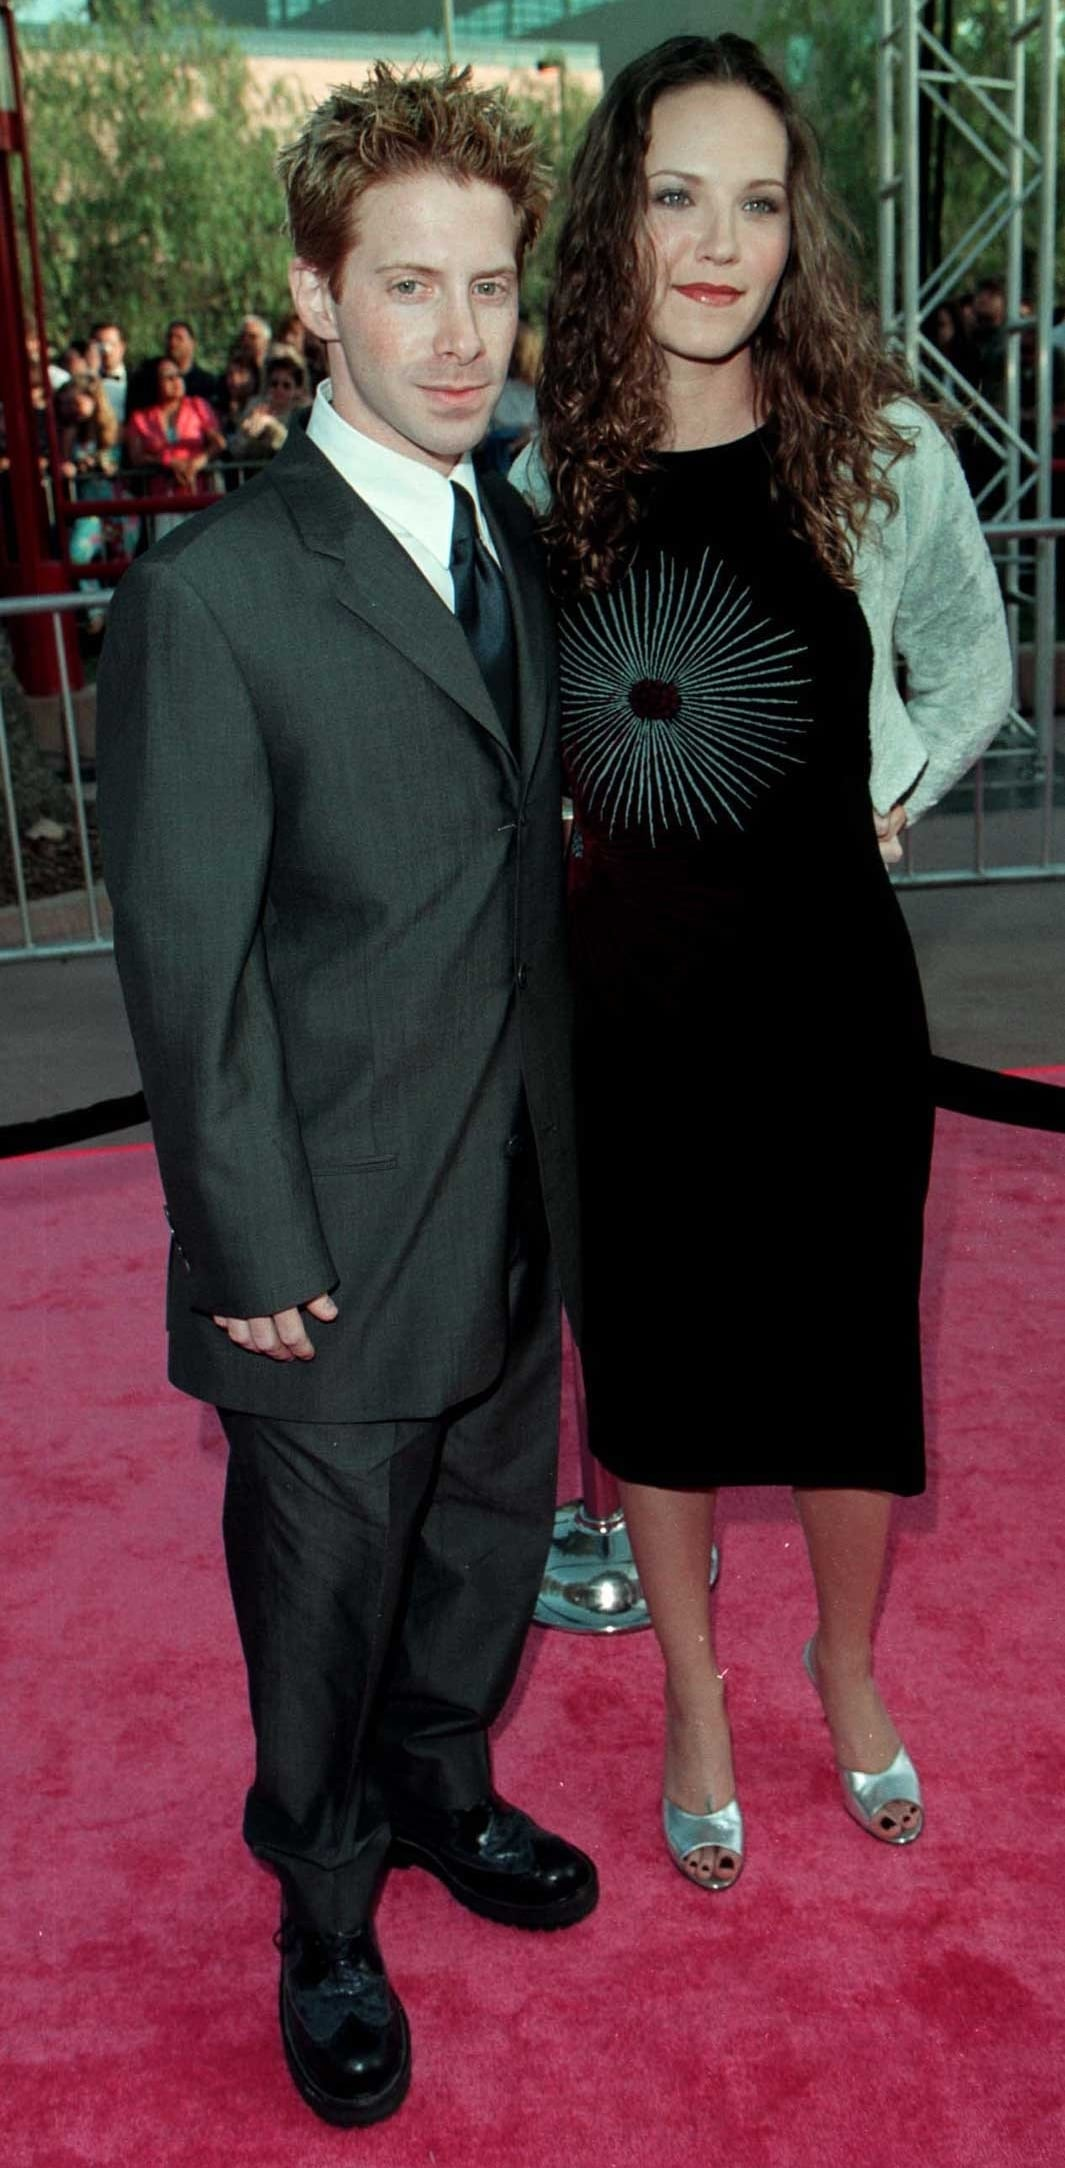 """Seth Green and his girlfriend Chad Morgan at the world premiere of """"Austin Powers - The Spy Who Shagged Me"""""""